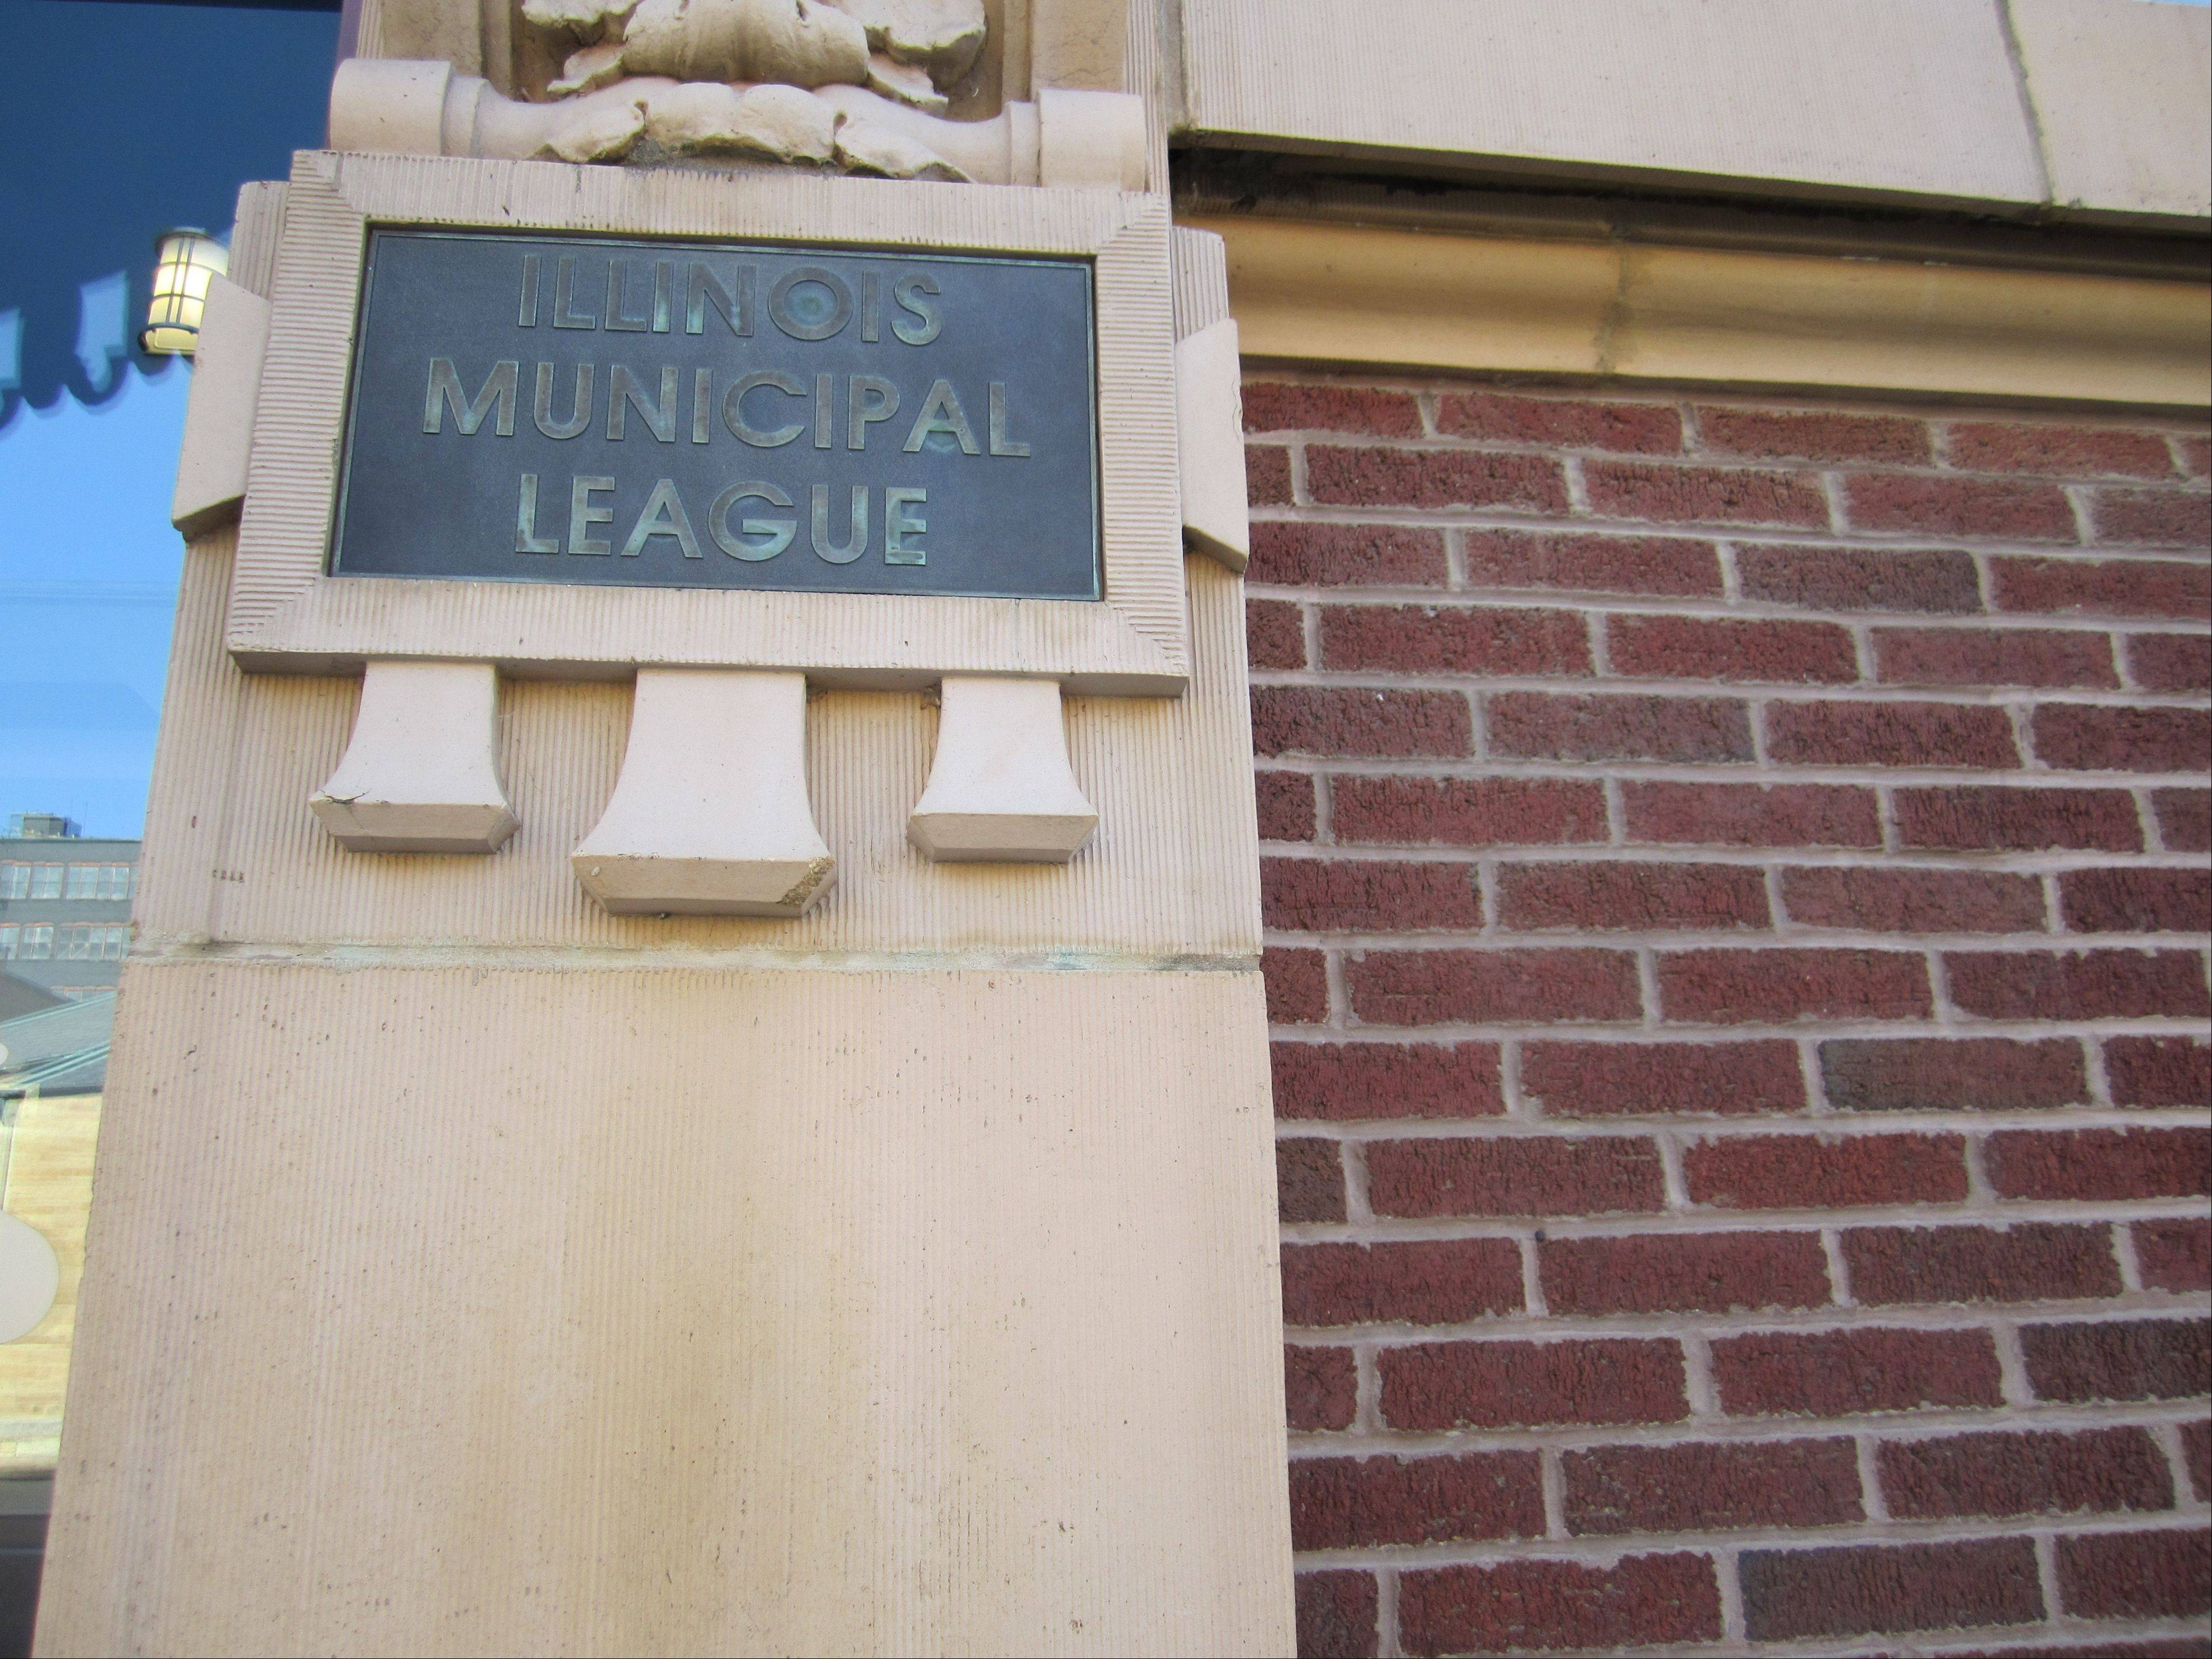 Renovations at the Illinois Municipal League headquarters in Springfield are one area criticized by several suburban mayors, who also are calling for dismissing some top-level administrators.